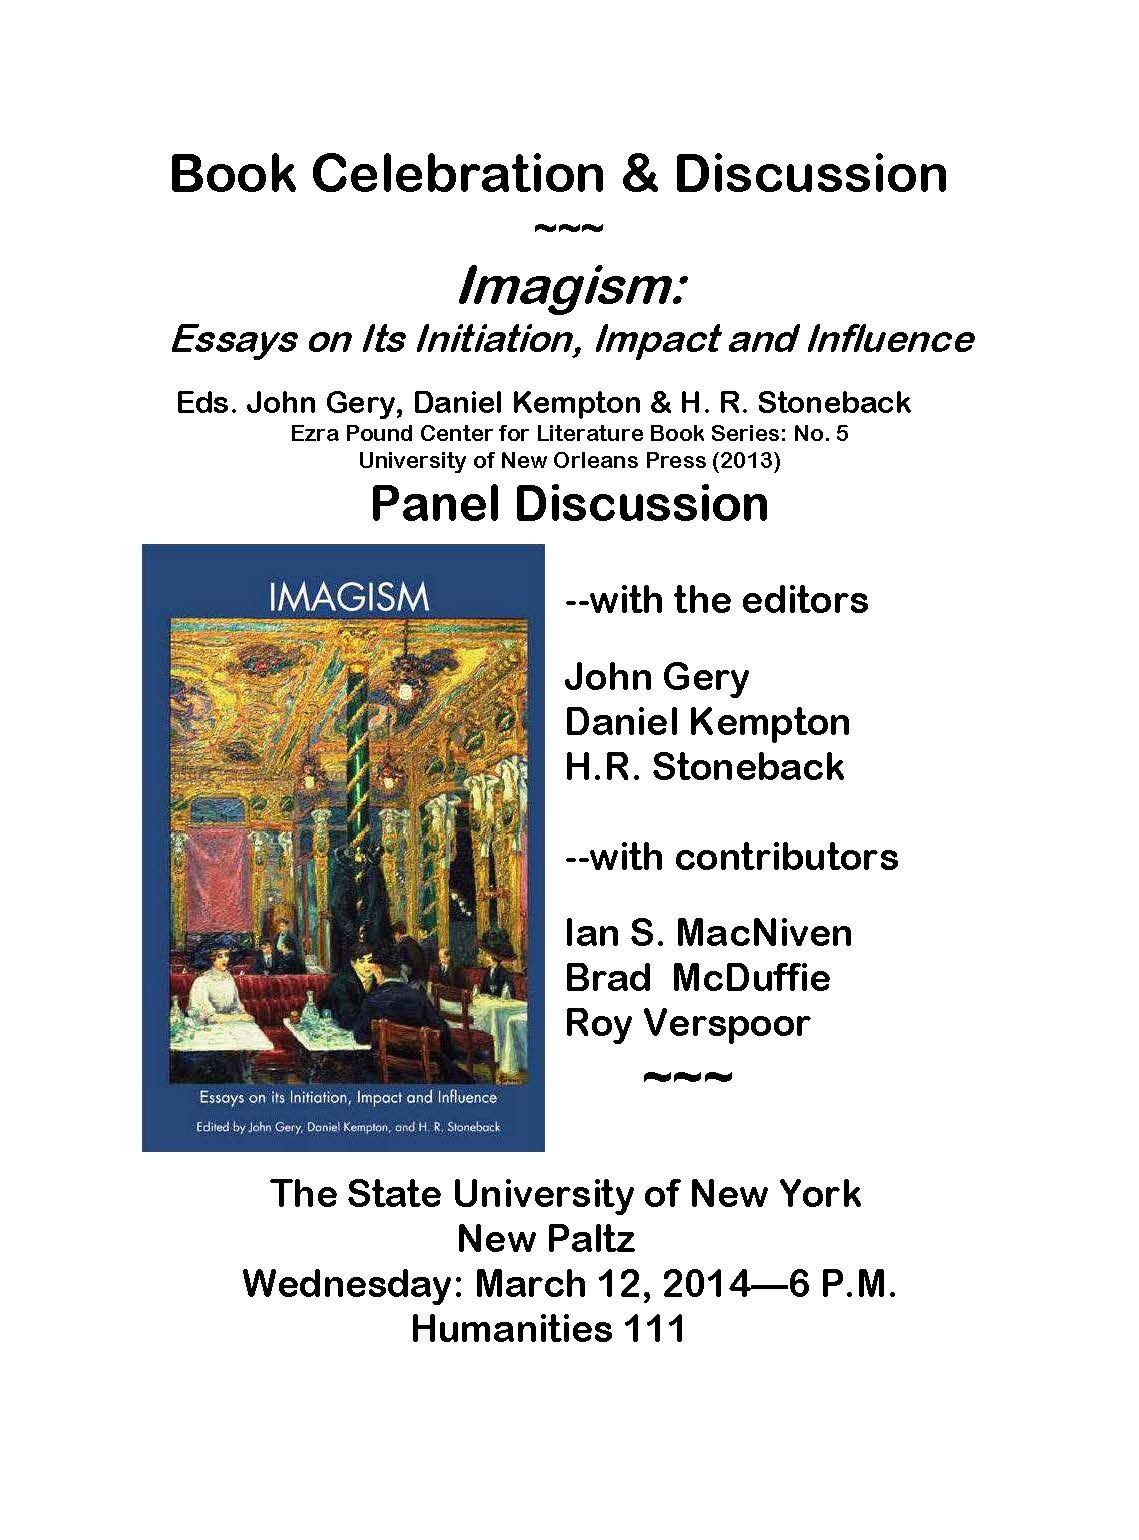 essay on imagism Imagisme essay, definition of creative writing in english, cv writing service nottingham posted february 5, 2018 by & filed under post frame buzz essay exam essentials presentation today wss 3134 2:30 for details: #westernu #westernusdc.